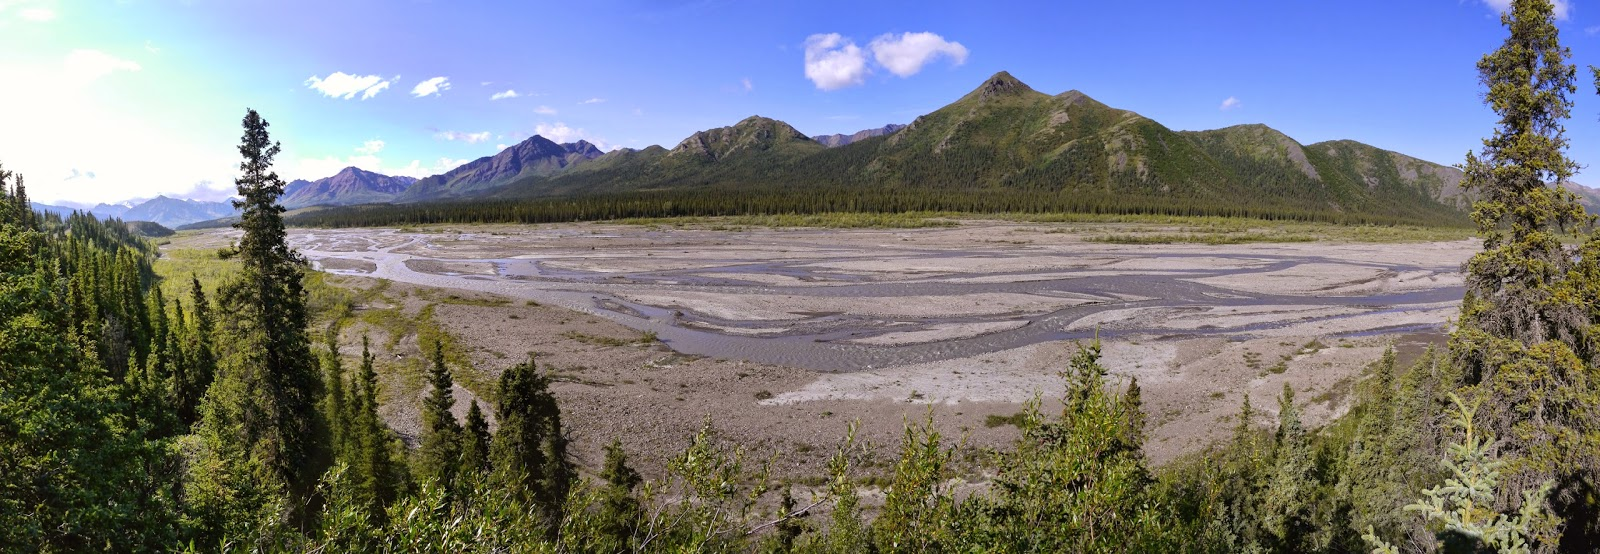 Braided channels of the Teklanika River in Denali National Park.